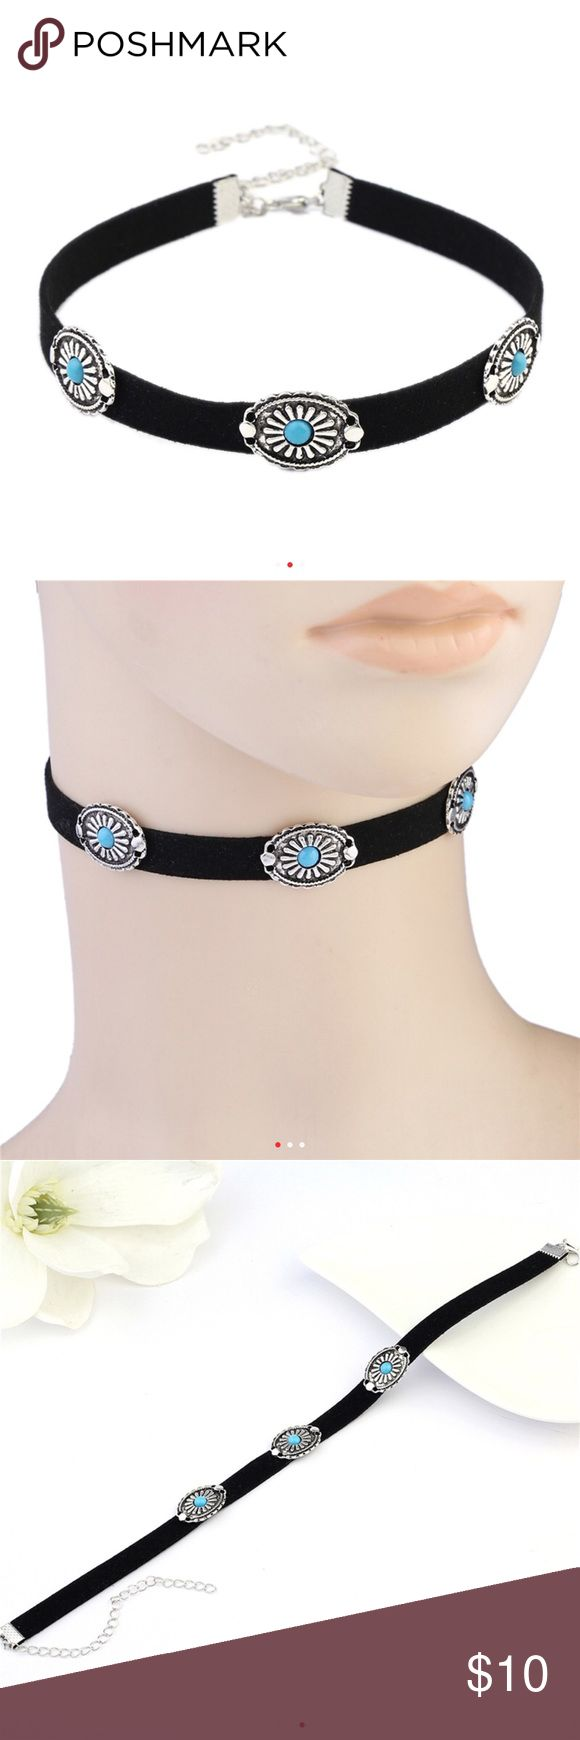 💎2 LEFT💎 Black or White Turquoise Western Choker 🔻BLACK OUT OF STOCK🔻2 WHITE🔻  BRAND NEW  All items arrive adorably gift wrapped. 🎁  Simply bundle your items & save 💲💲💲  WHILE SUPPLIES LAST  Thanks for your support & enjoy! 💕  TAGS ONLY: NOT: Nasty Gal Victoria's Secret Ulta Sephora MAC H&M Lululemon Francesca's kate spade J. Crew Kardashian Free People Juicy Stella & Dot Tory Burch Smashbox Anthropology Urban Outfitters follow game Kylie contour metallic shimmer lip classy…